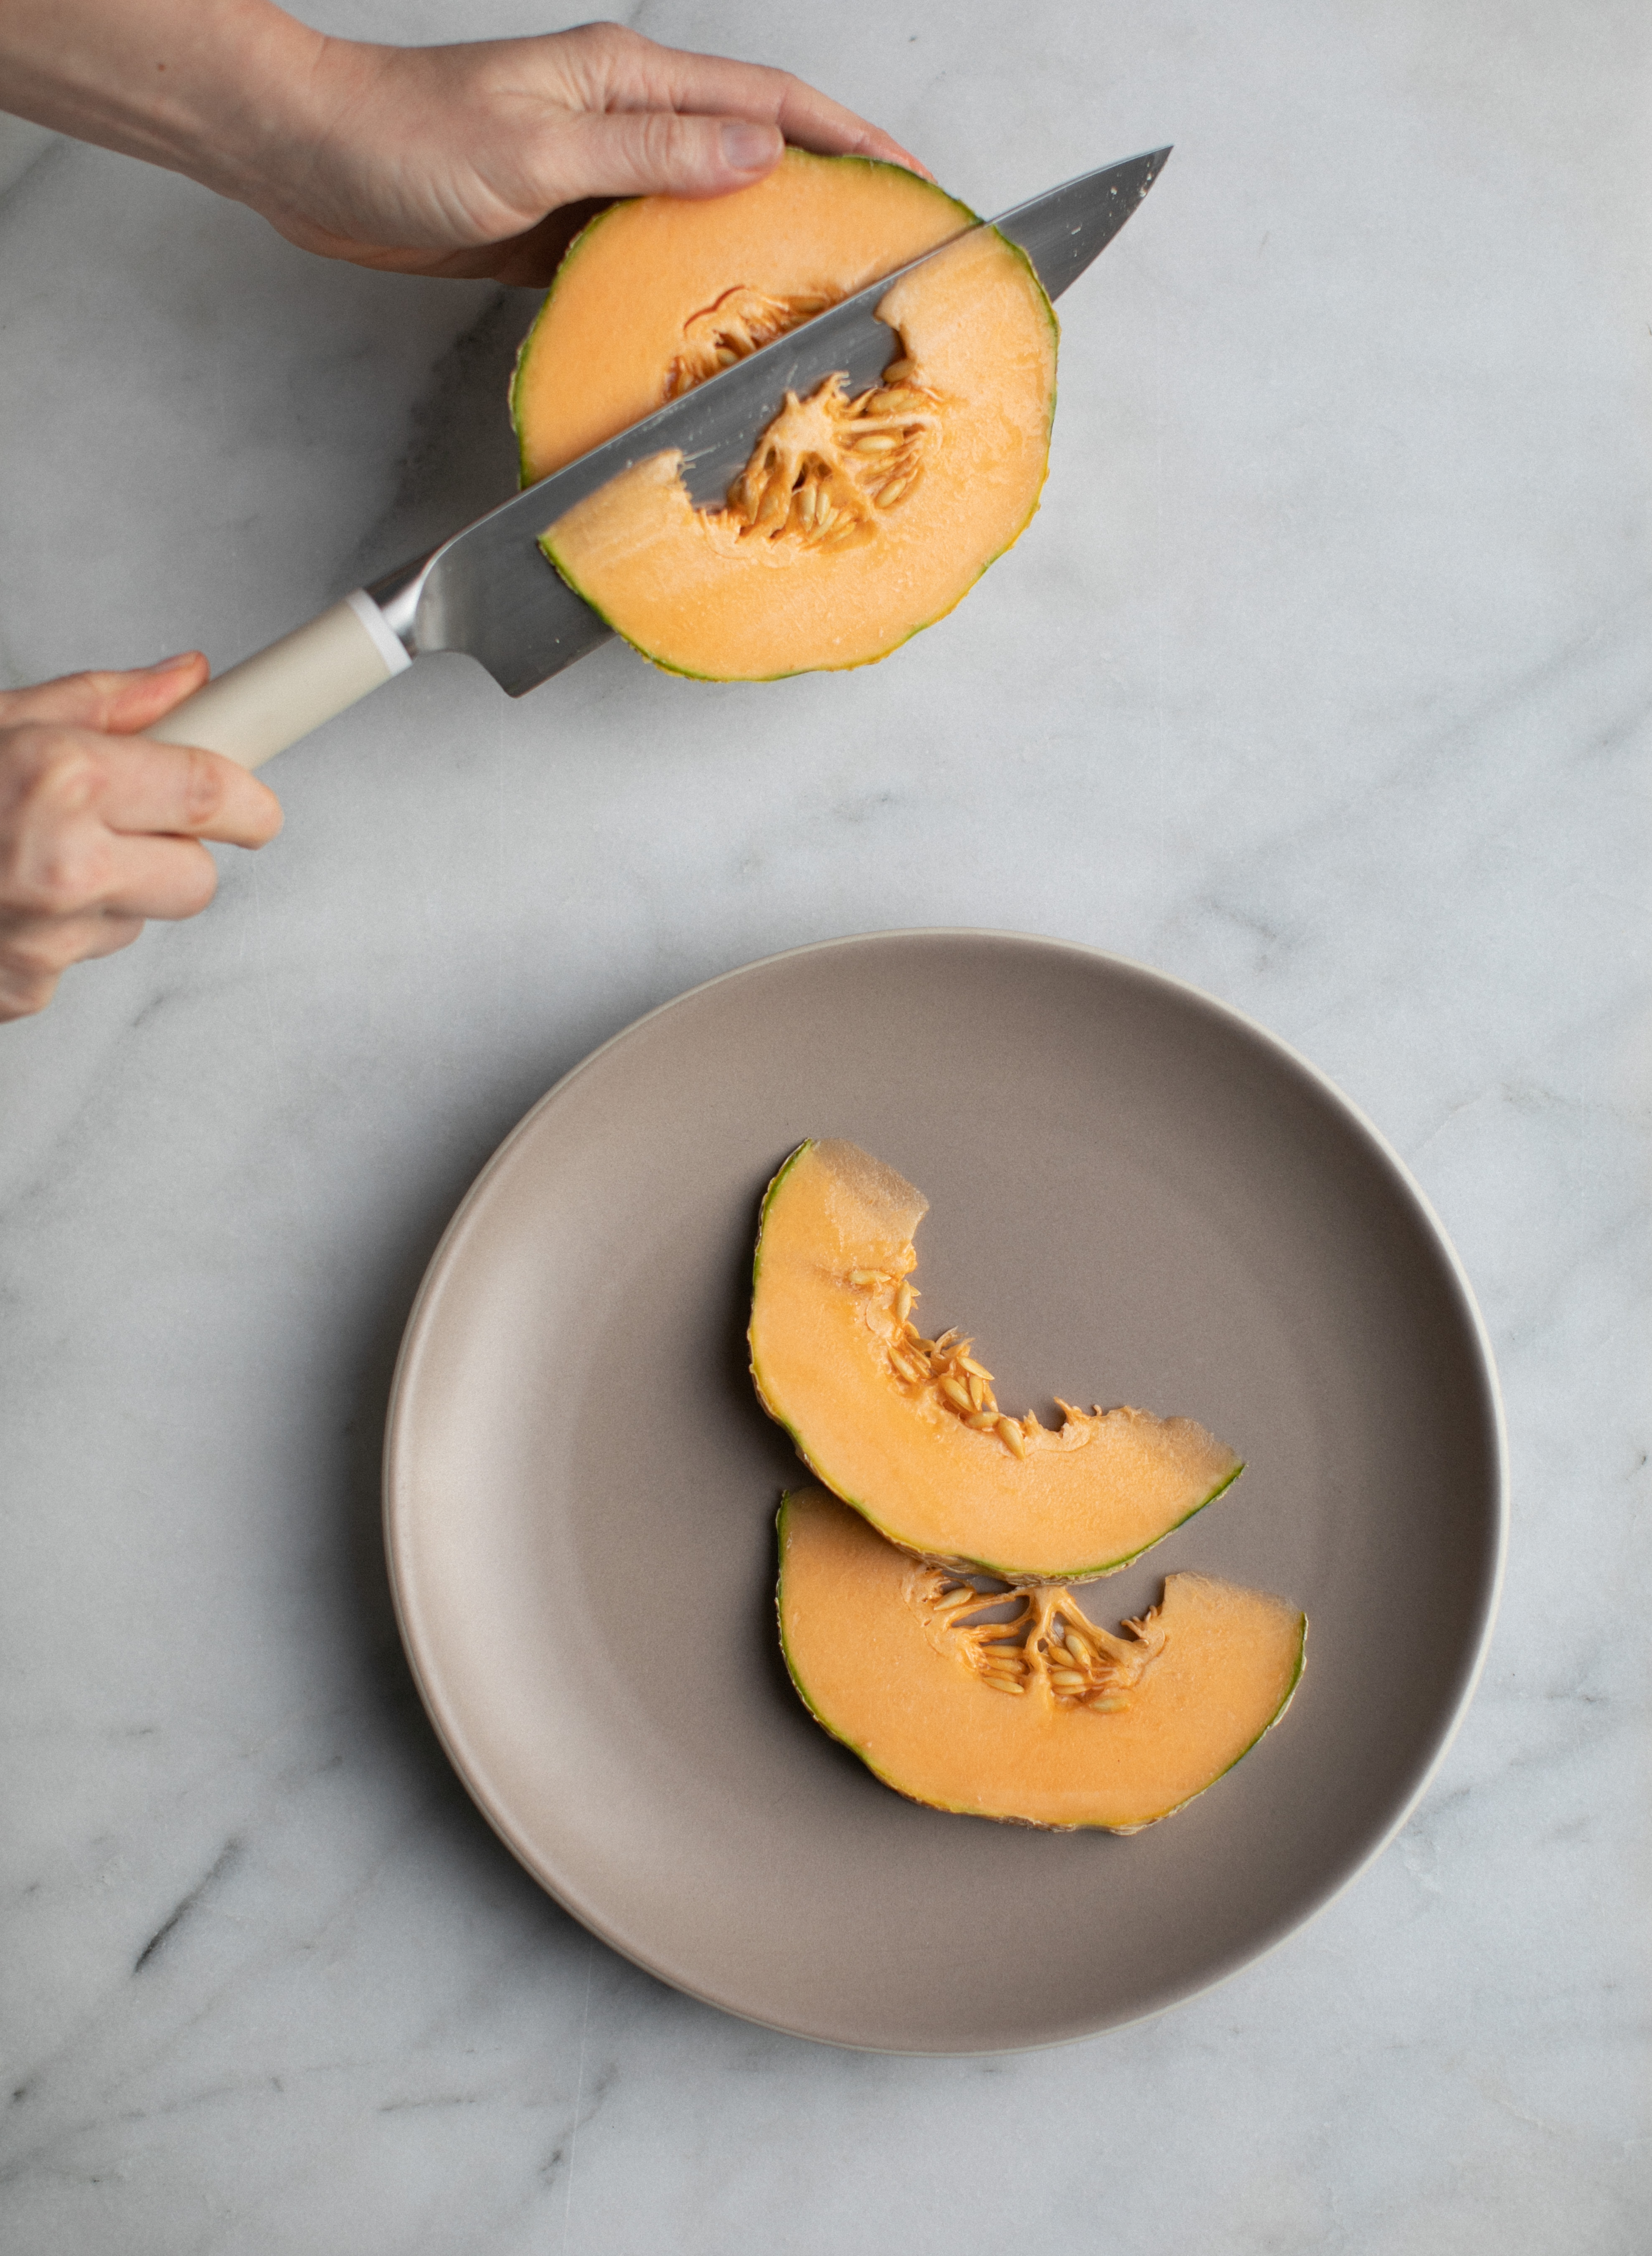 slicing a melon for a fruit plate